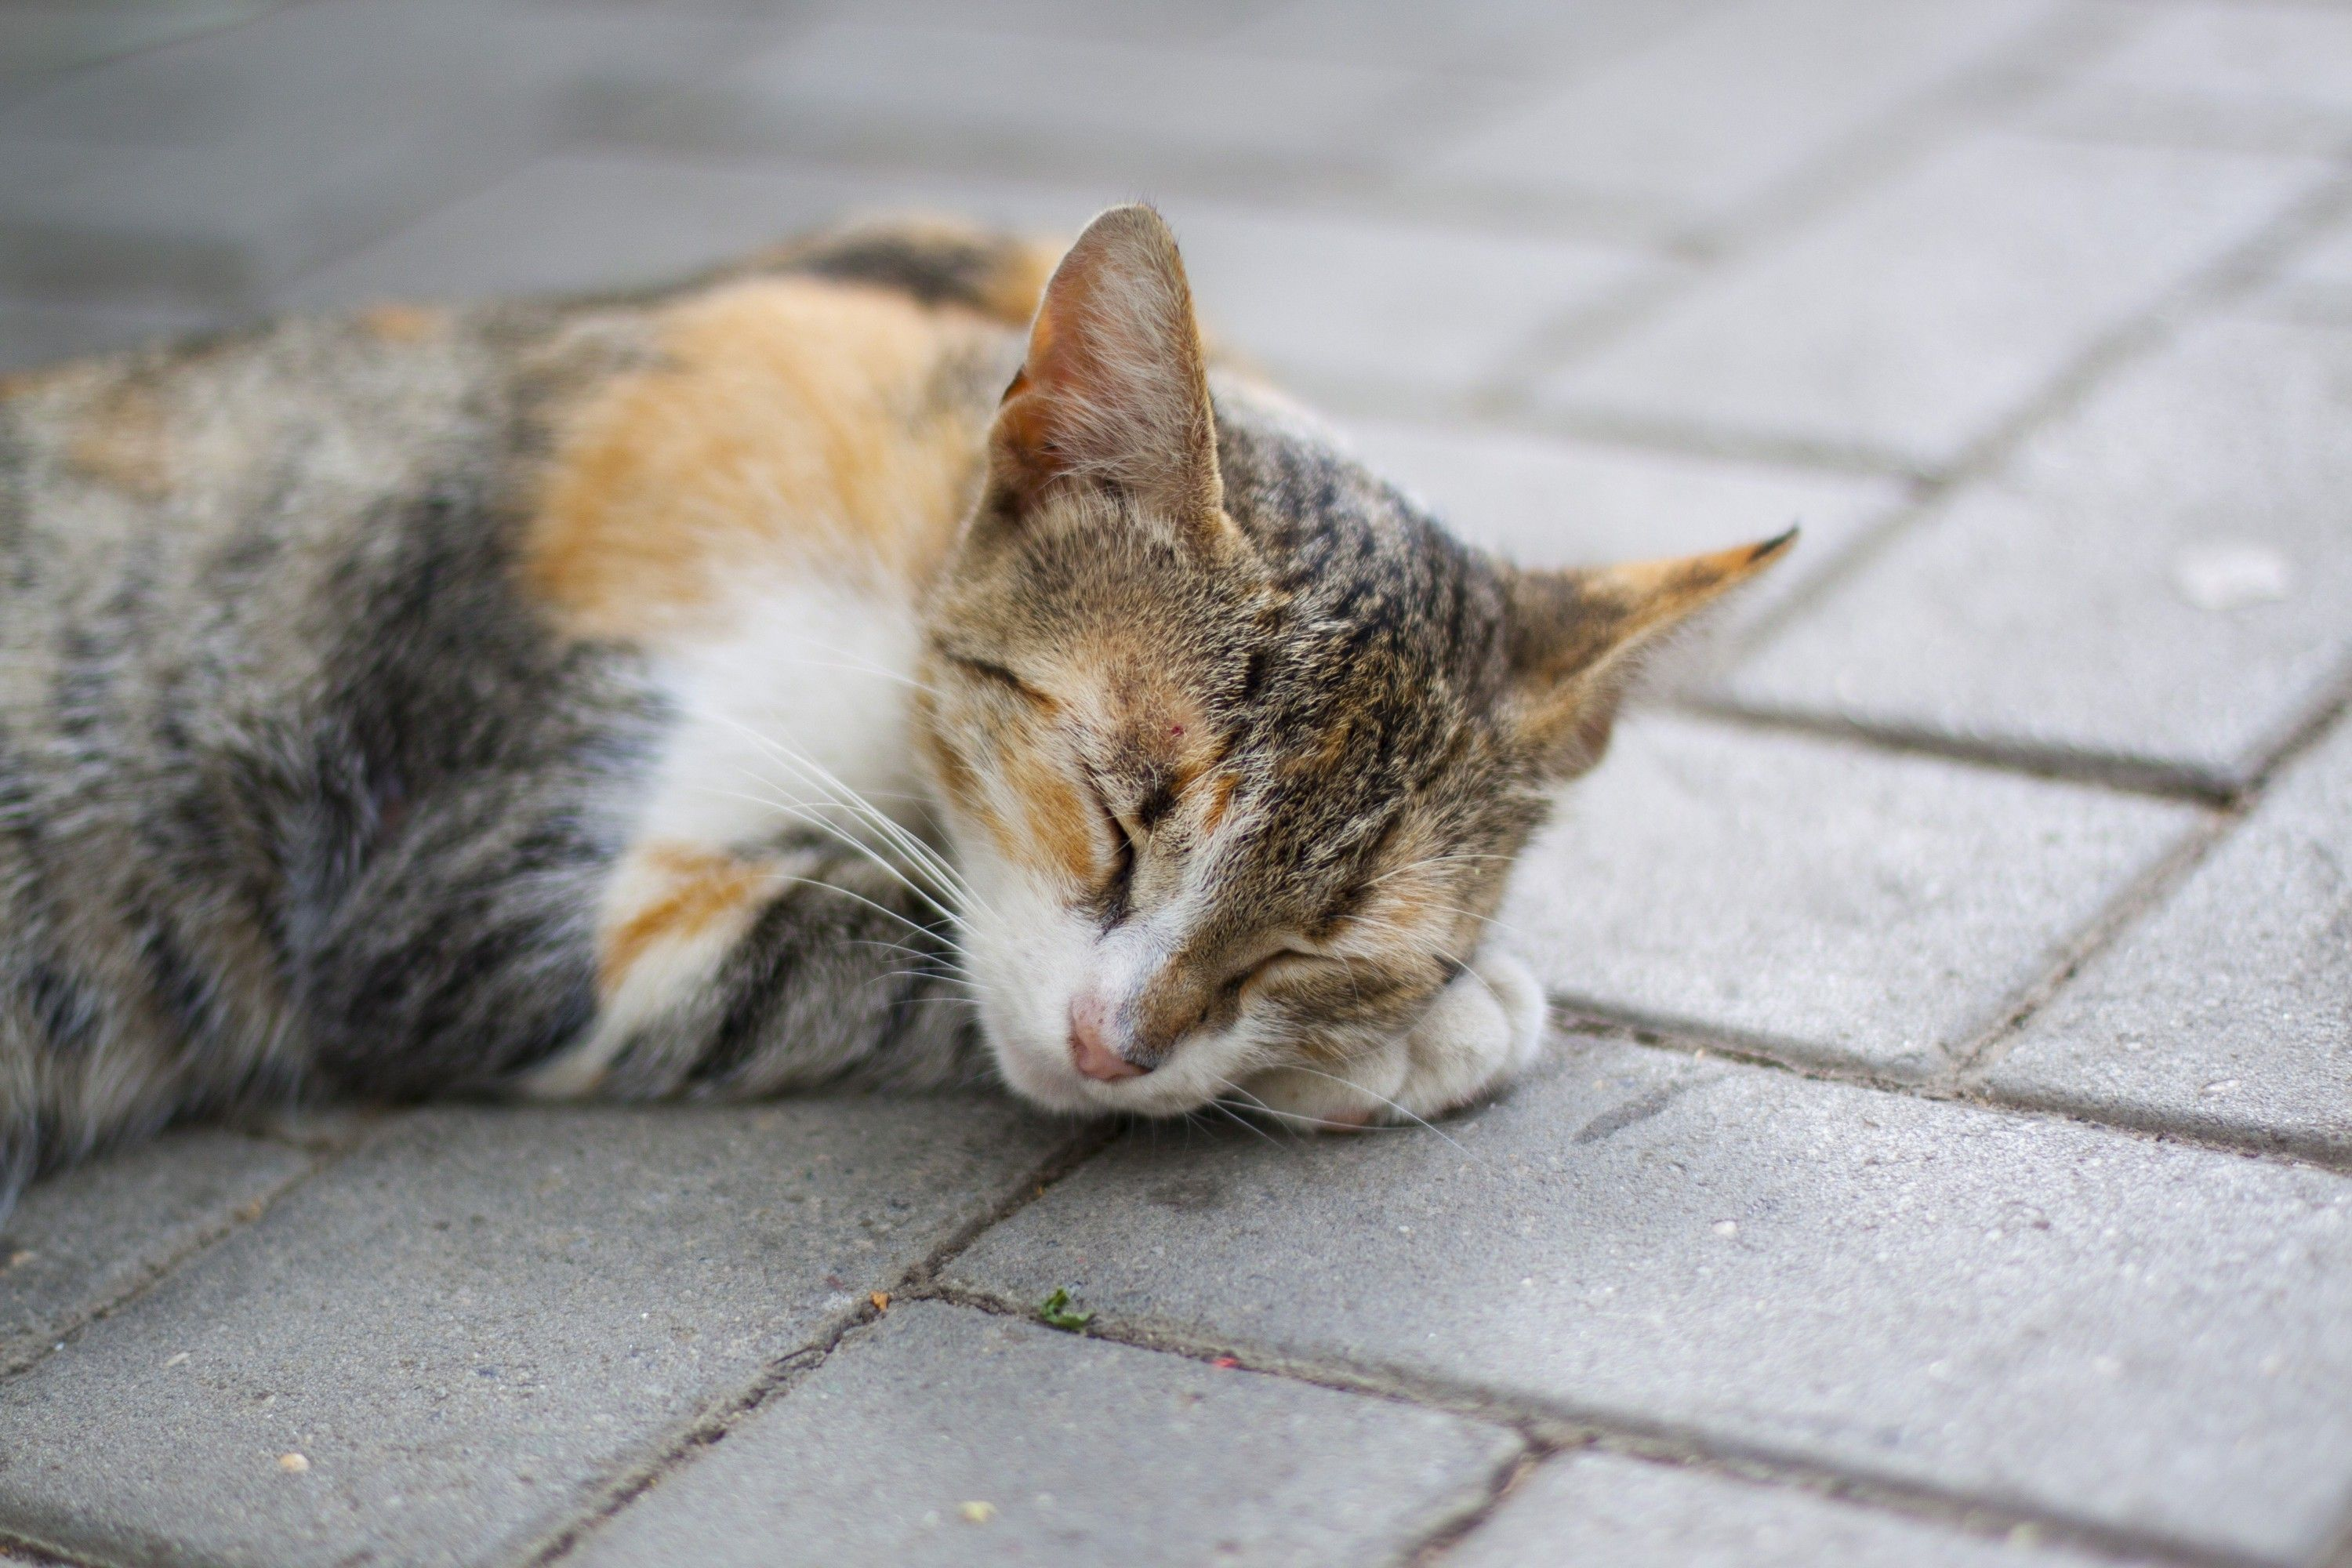 American Wirehair Cat Sleeping on Sidewalk | Cats Free Stock Photos ...